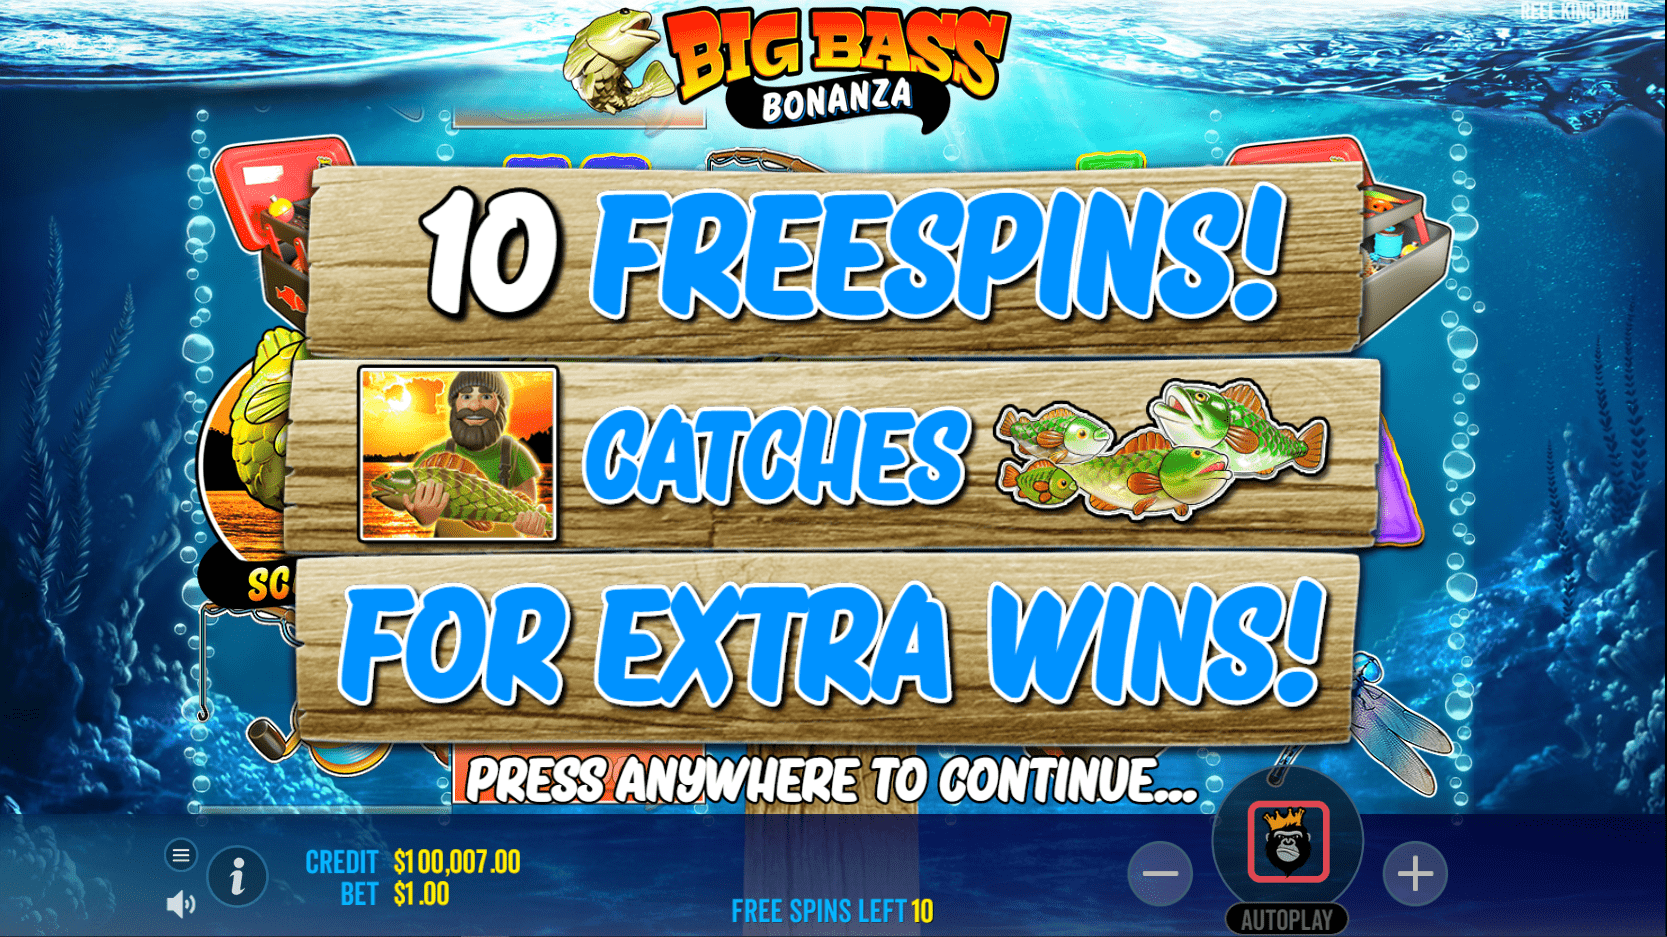 Big Bass Bonanza Video Slot 10 Free Spins